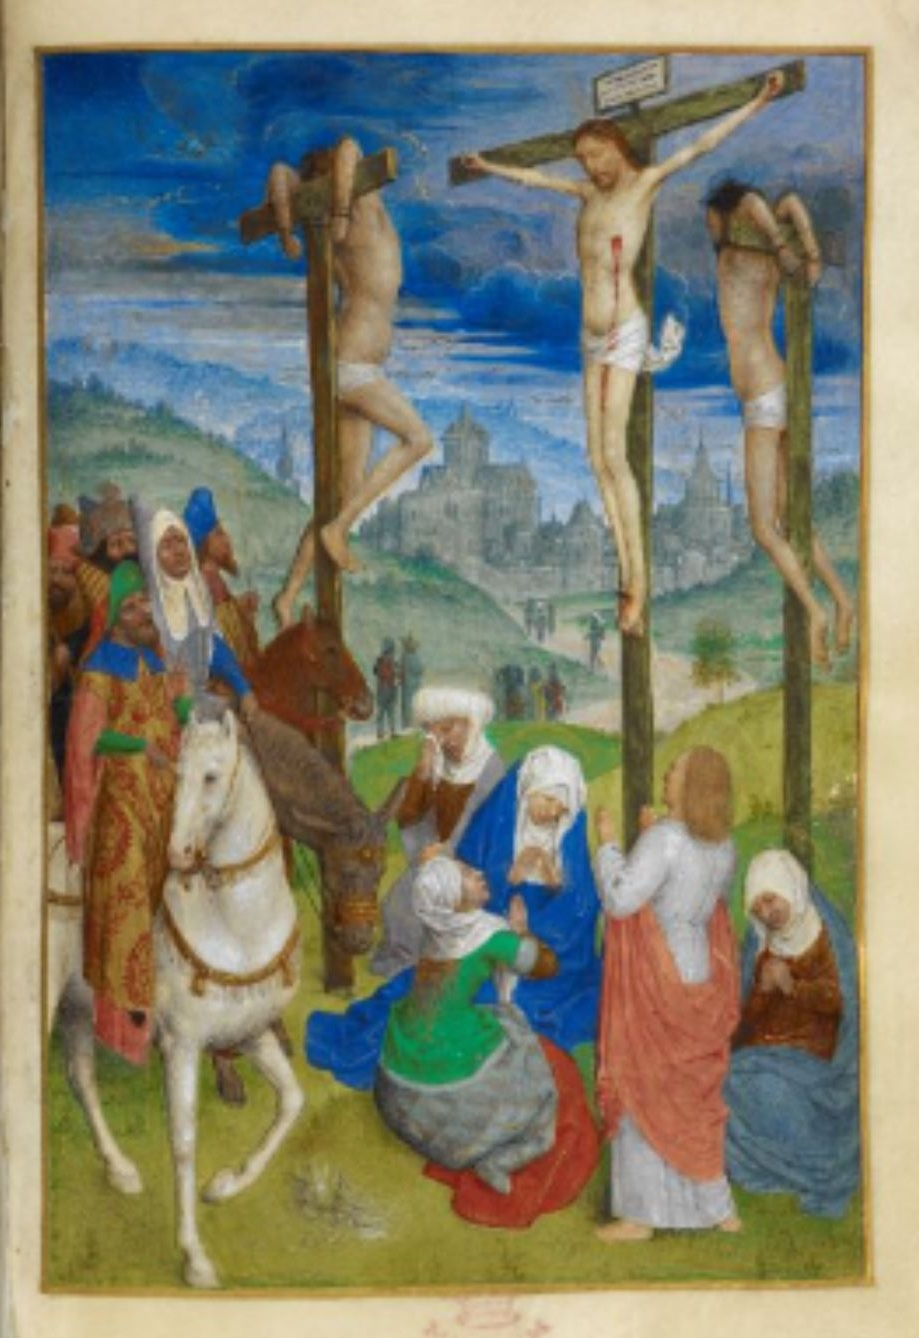 1485-90 Huth Hours BL Add MS 38126 fol 39v inverse Simon Marmion Crucifixion